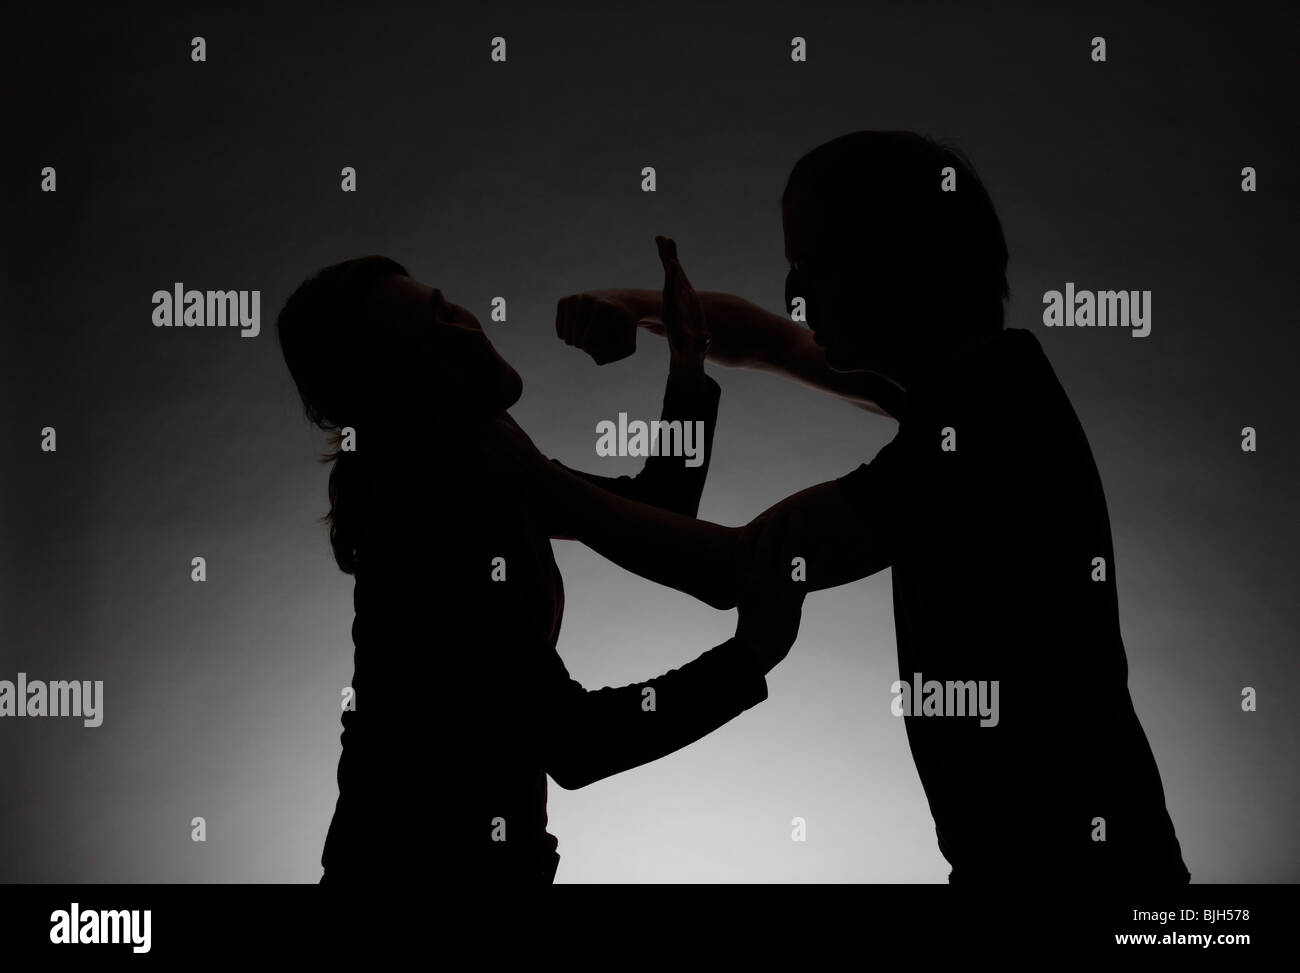 Man beating a woman. Symbol: violence between husband and wife, mistreatment, etc. - Stock Image